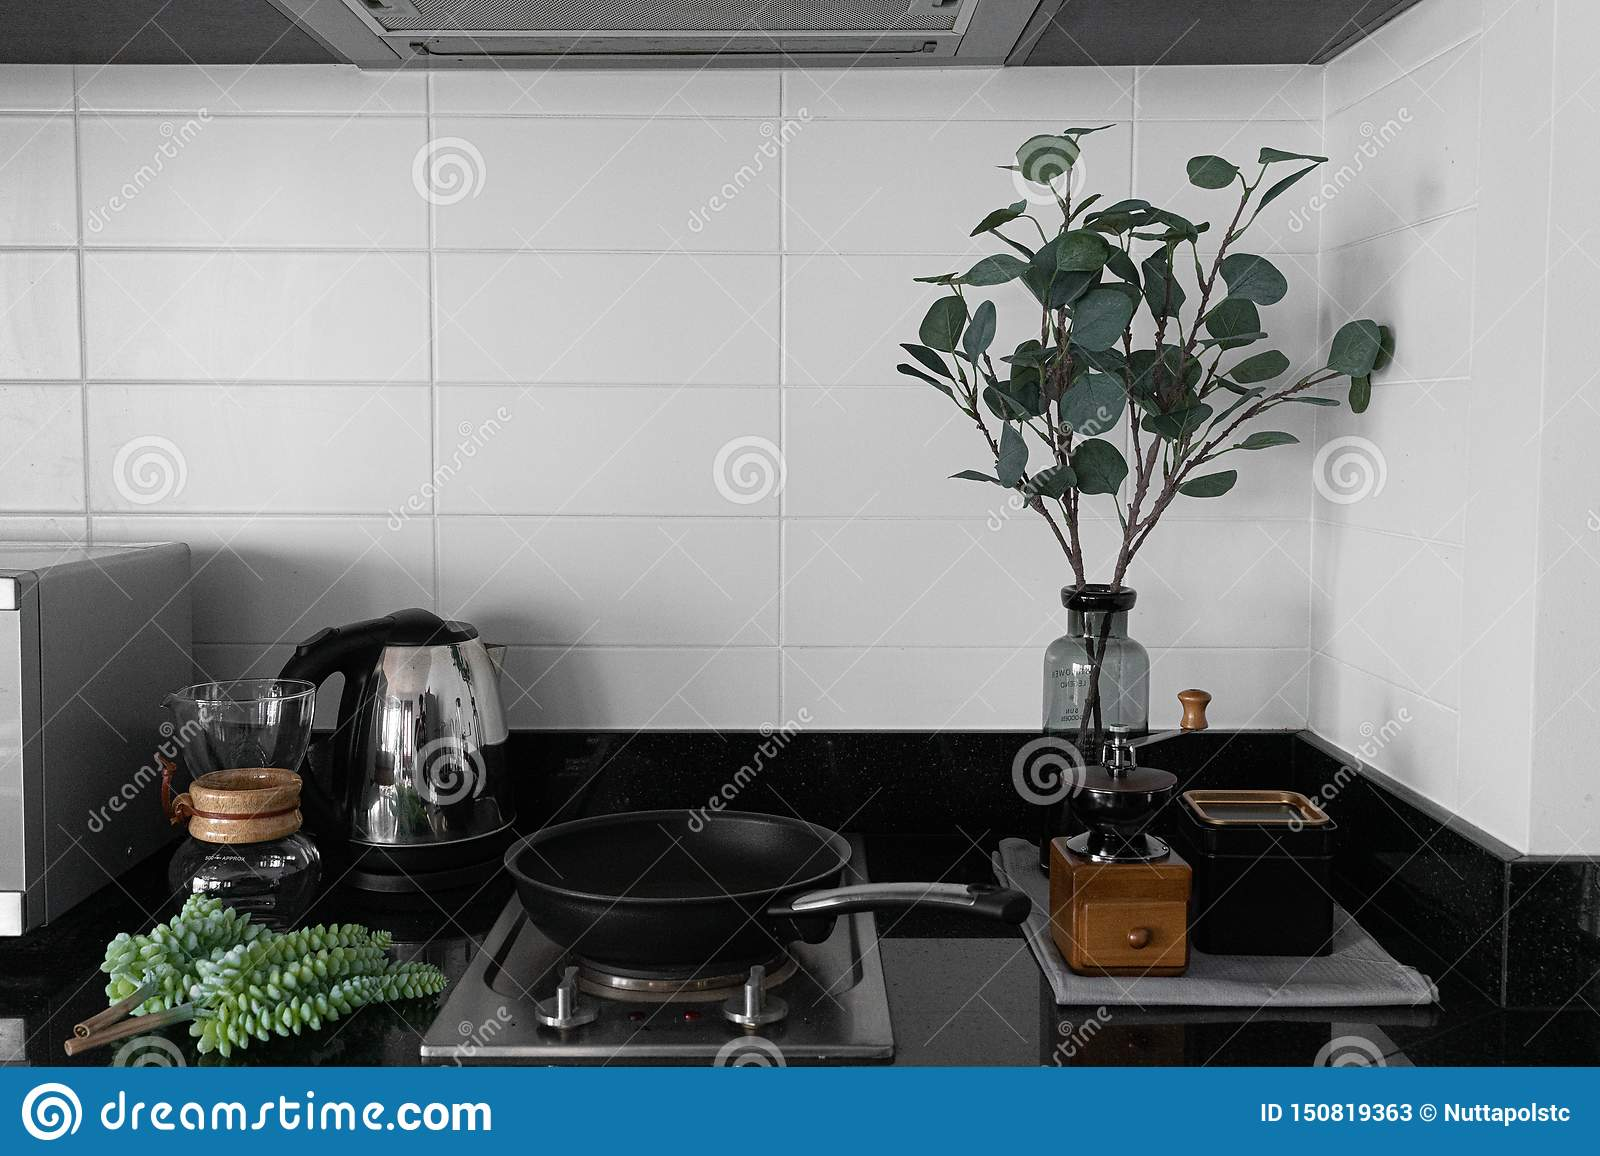 Cozy pantry corner / kitchen in scandinavian style white brick tile decoration and artificial plant in gray glass vase with hand c